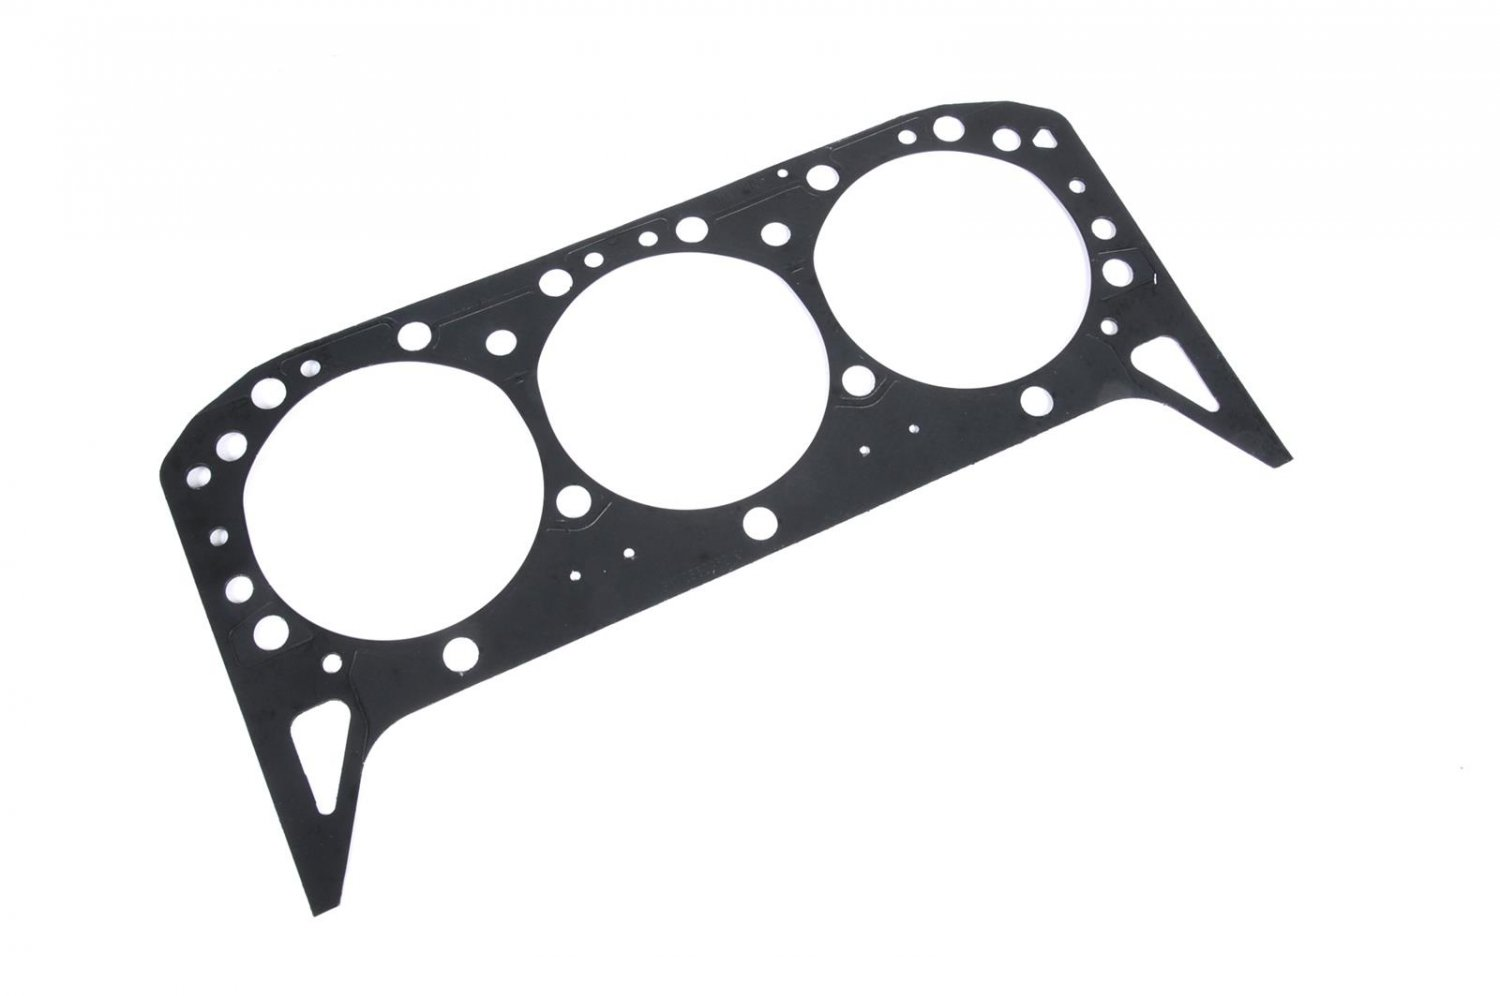 GM12552362- GM Original Equipment Engine Cylinder Head Gasket 12552362